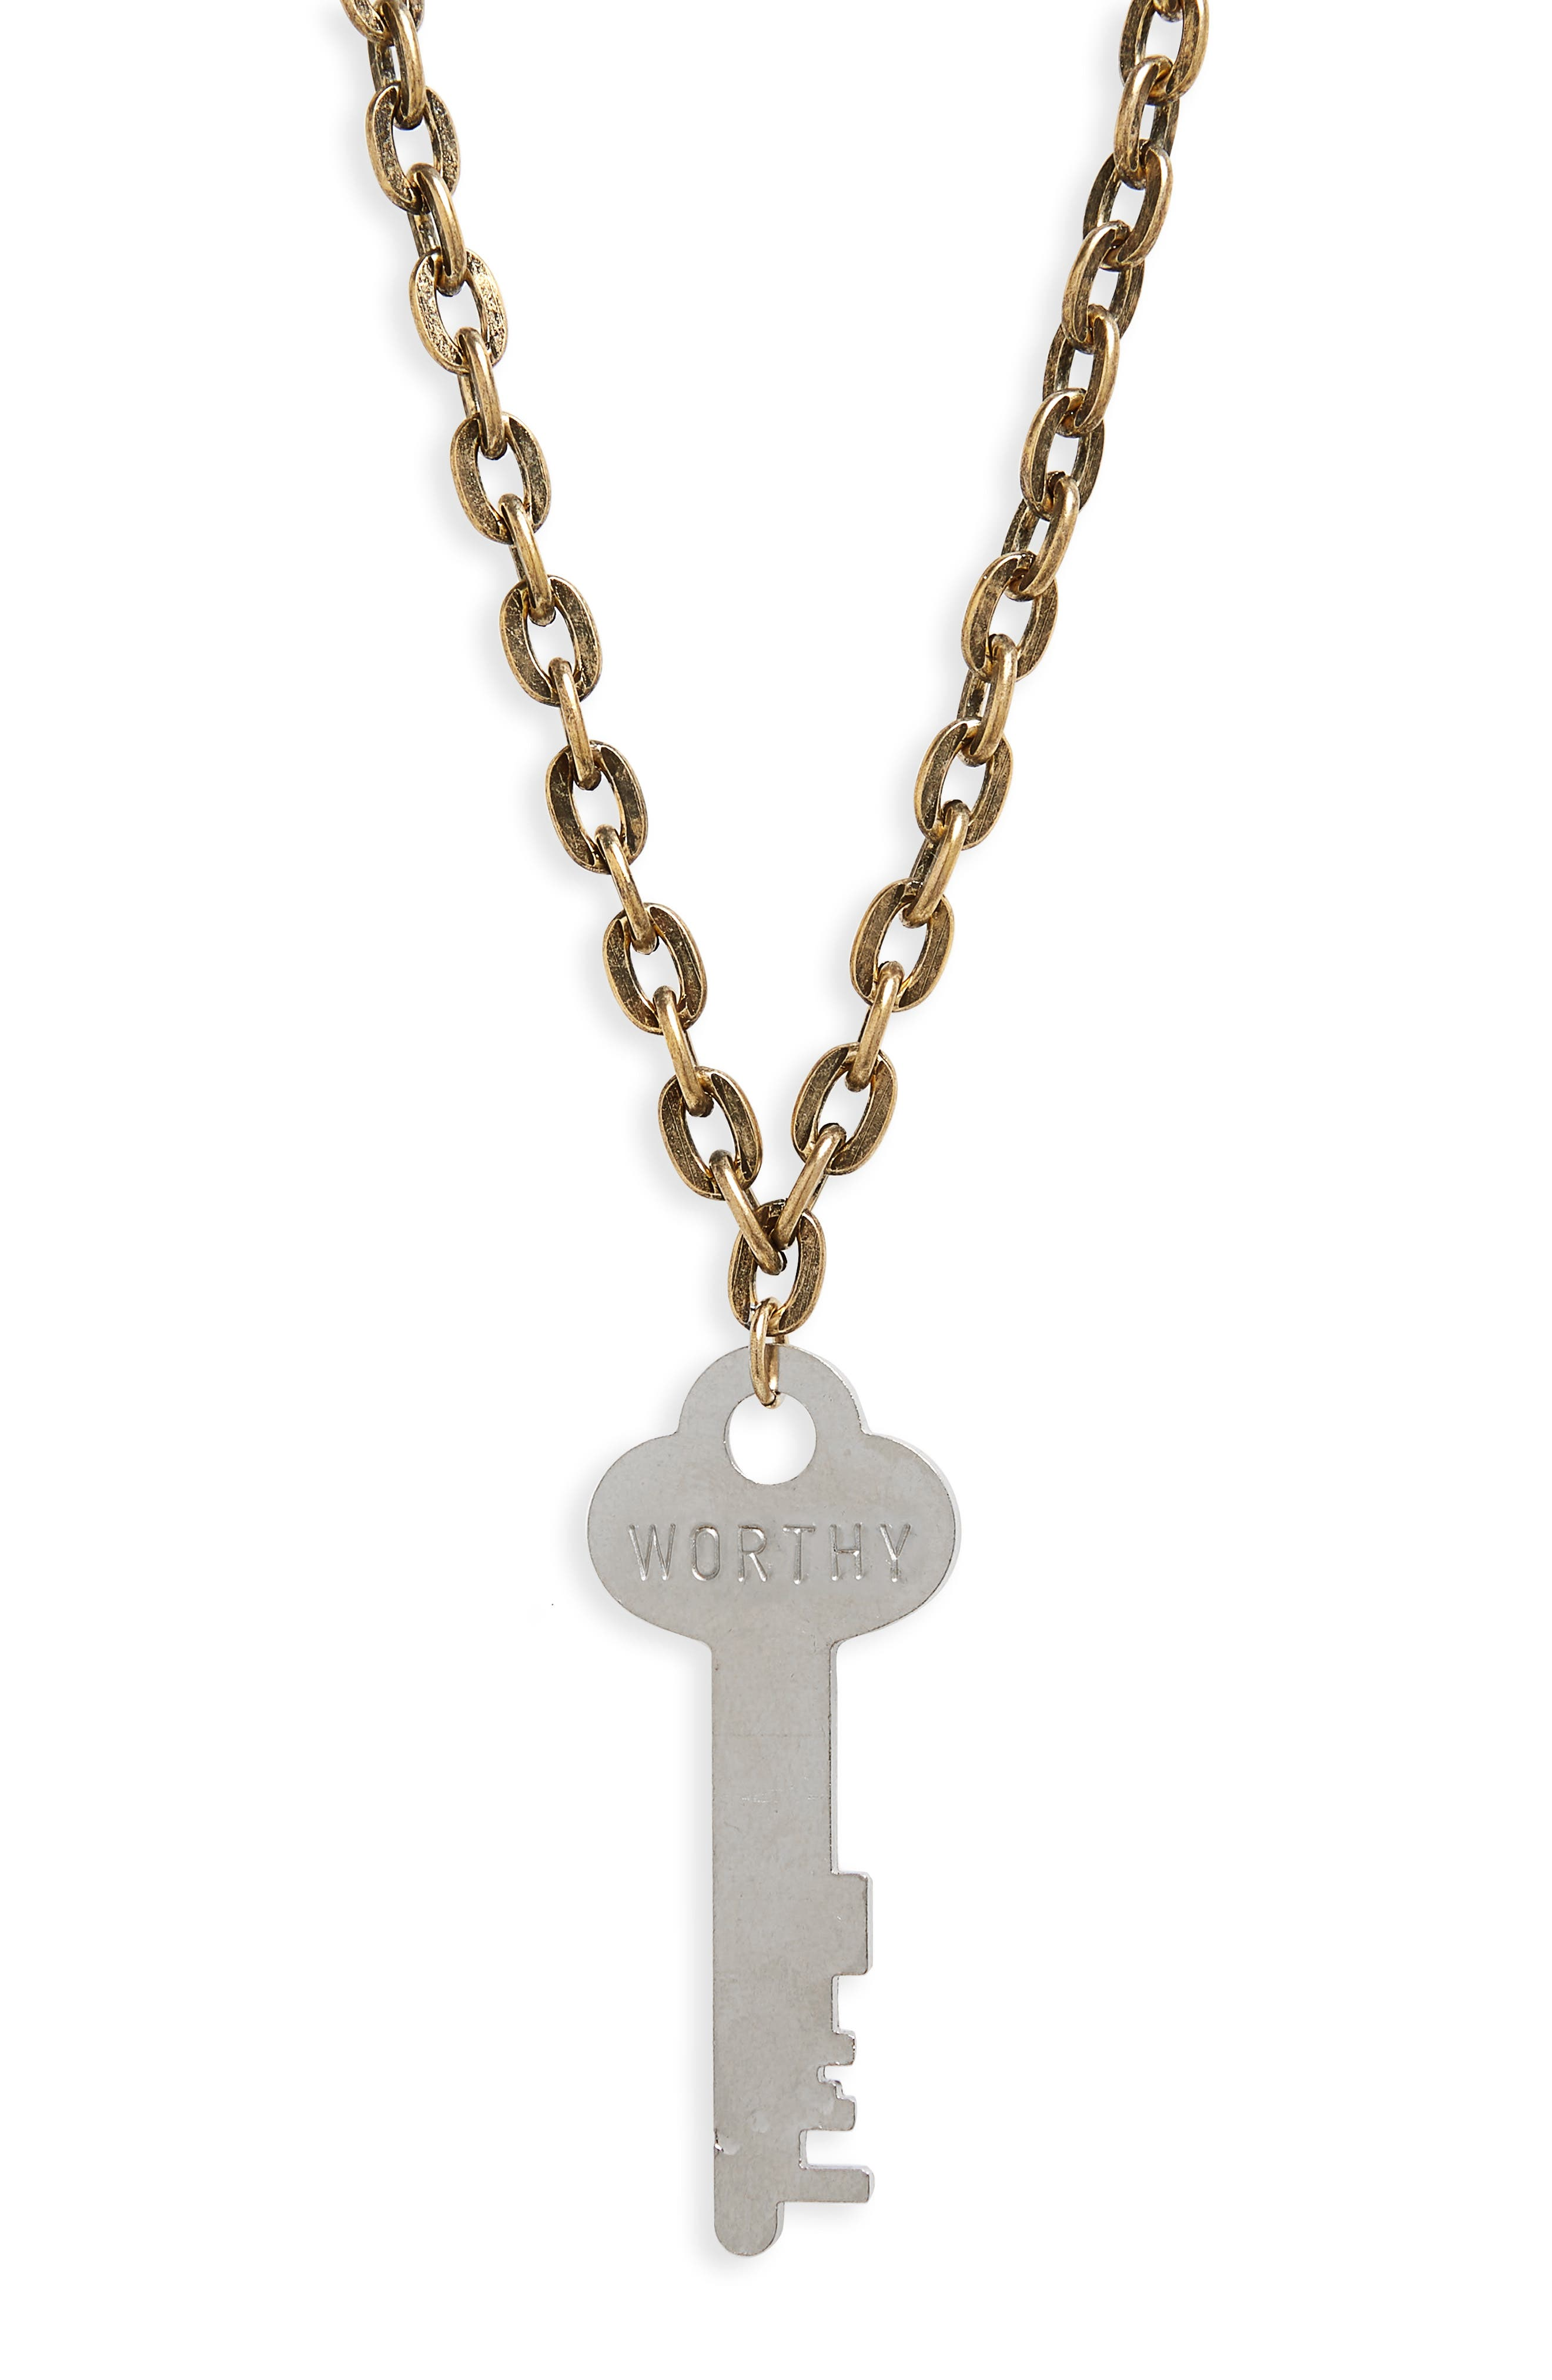 I Am Worthy Key Charm Necklace,                             Alternate thumbnail 6, color,